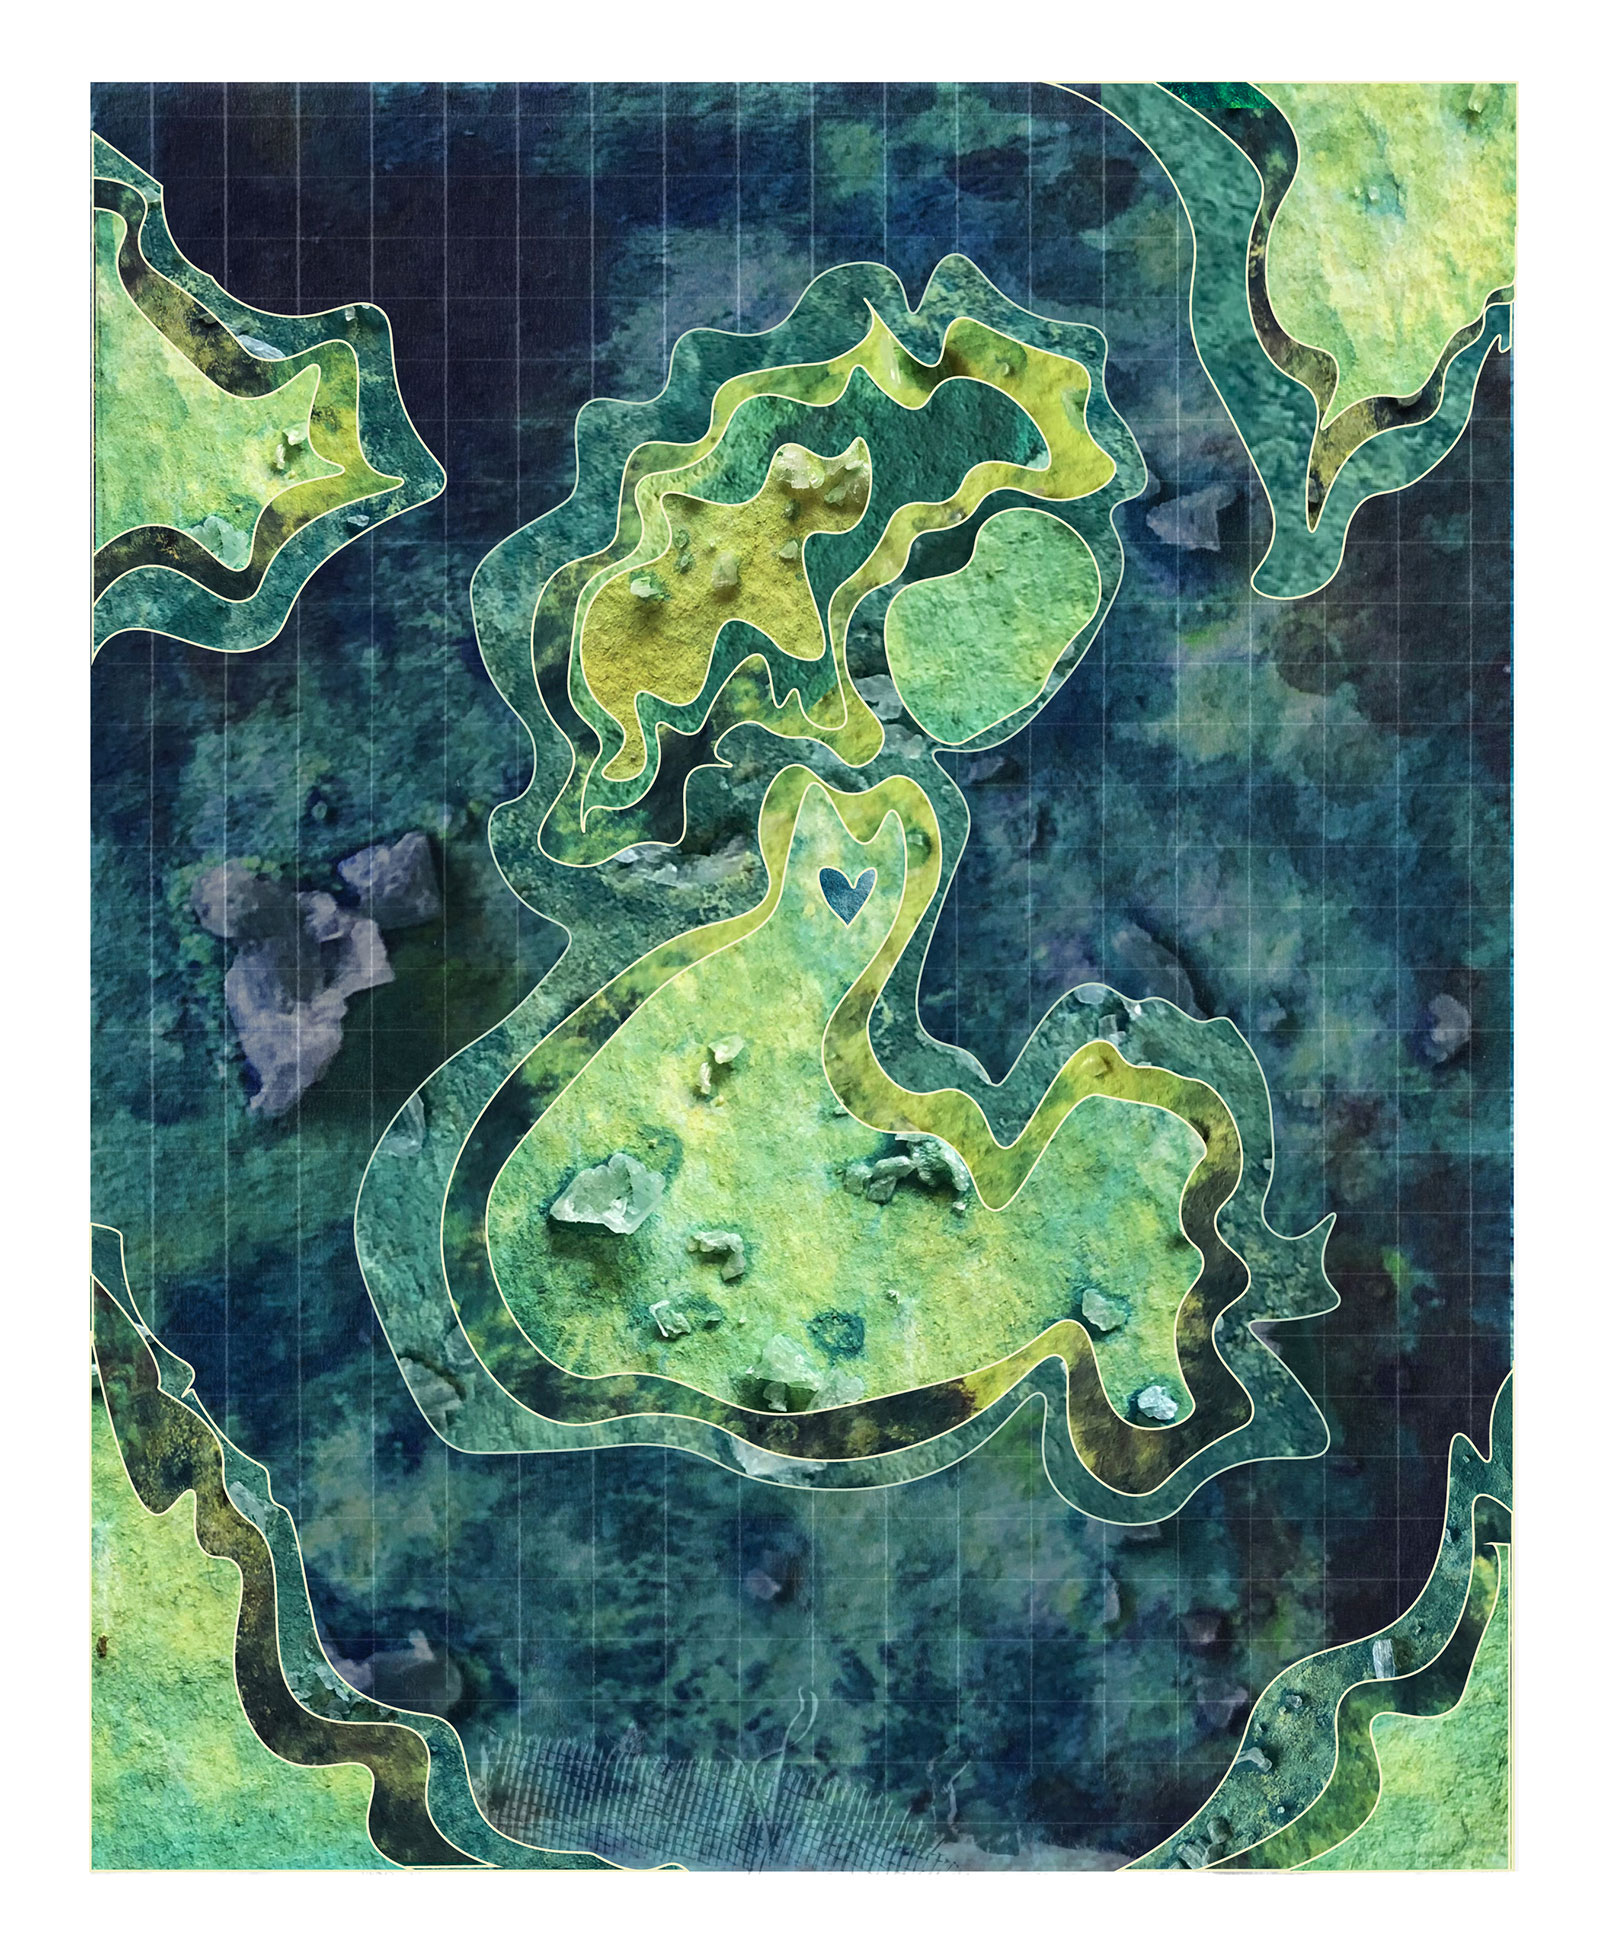 An abstract image with a central amorphous green shape, with textured and raised areas, surrounded by a larger blue area and superimposed on a grid